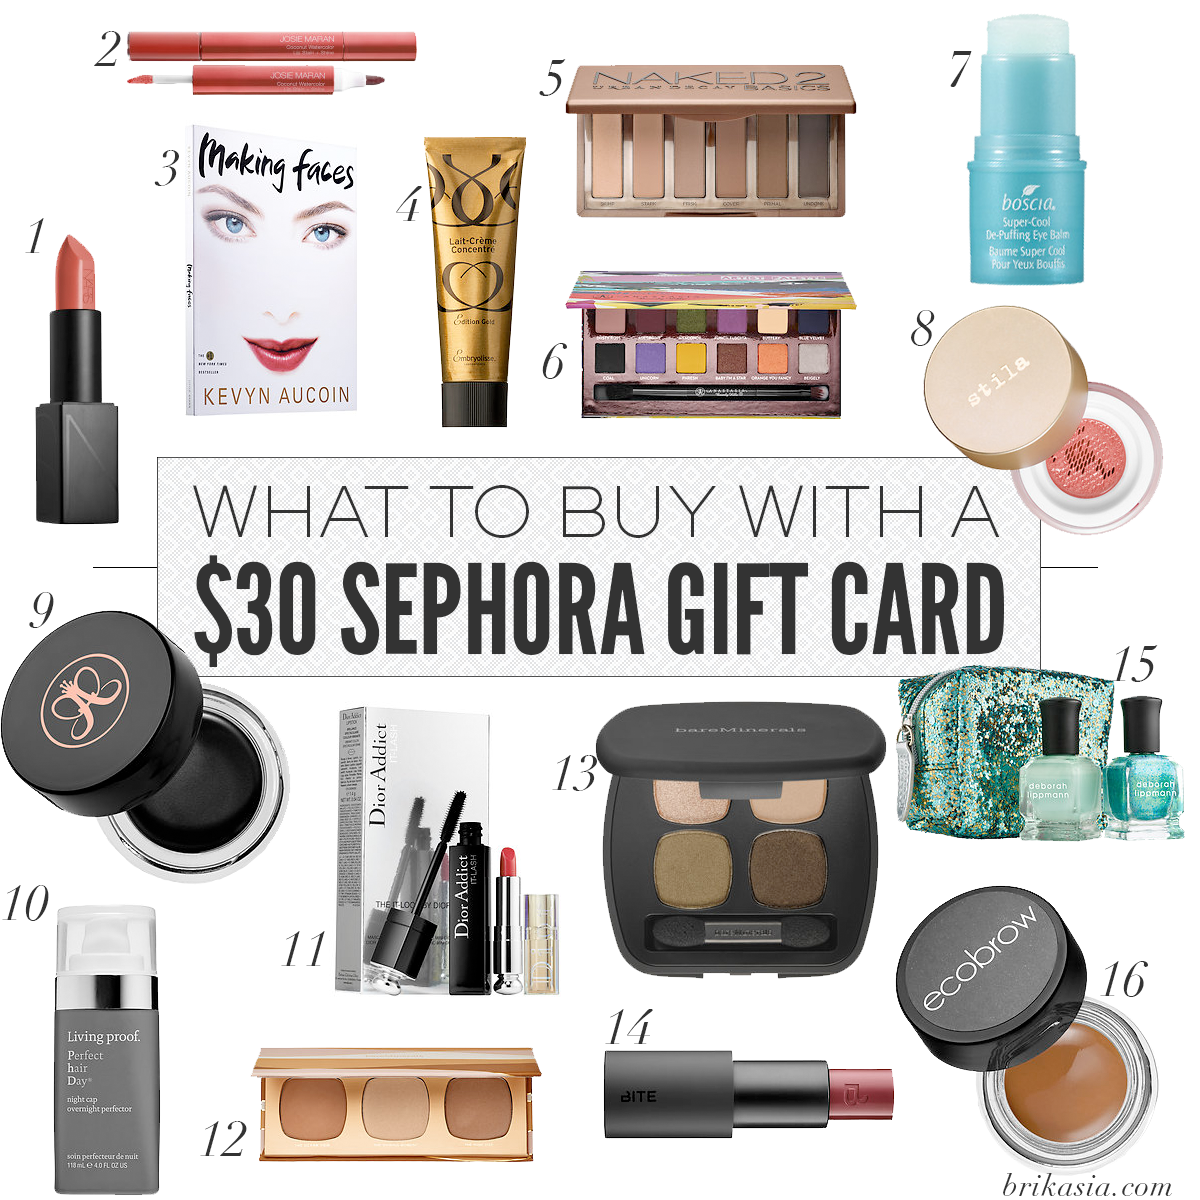 Win a 30 Sephora Gift Card! May Giveaway! Sephora gift